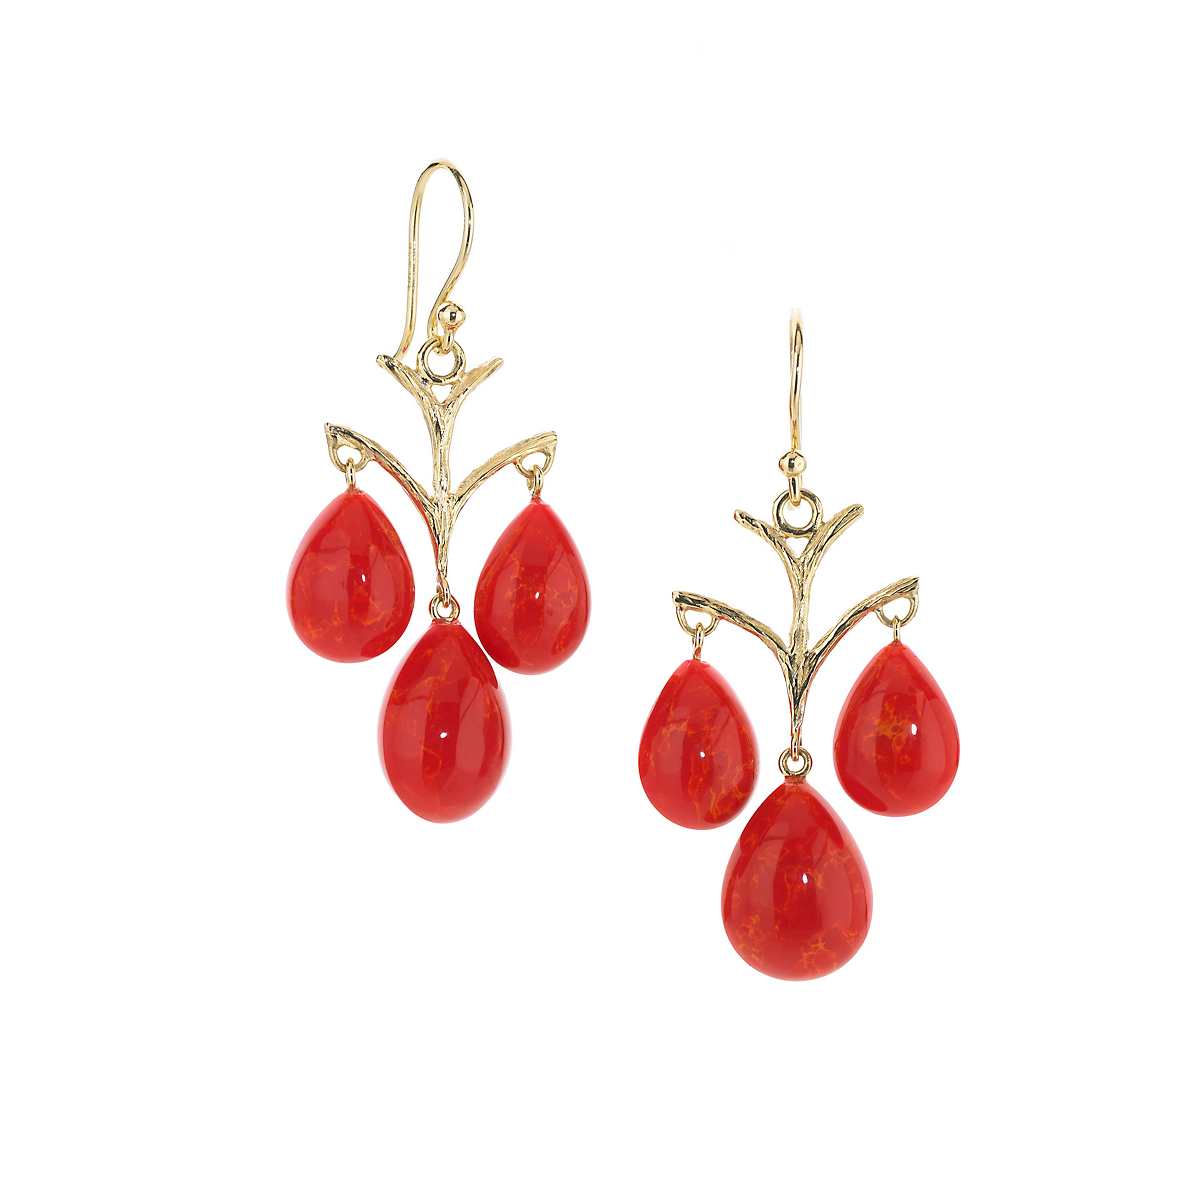 Elizabeth Showers Orange Coral Triple Drop Gold Earrings